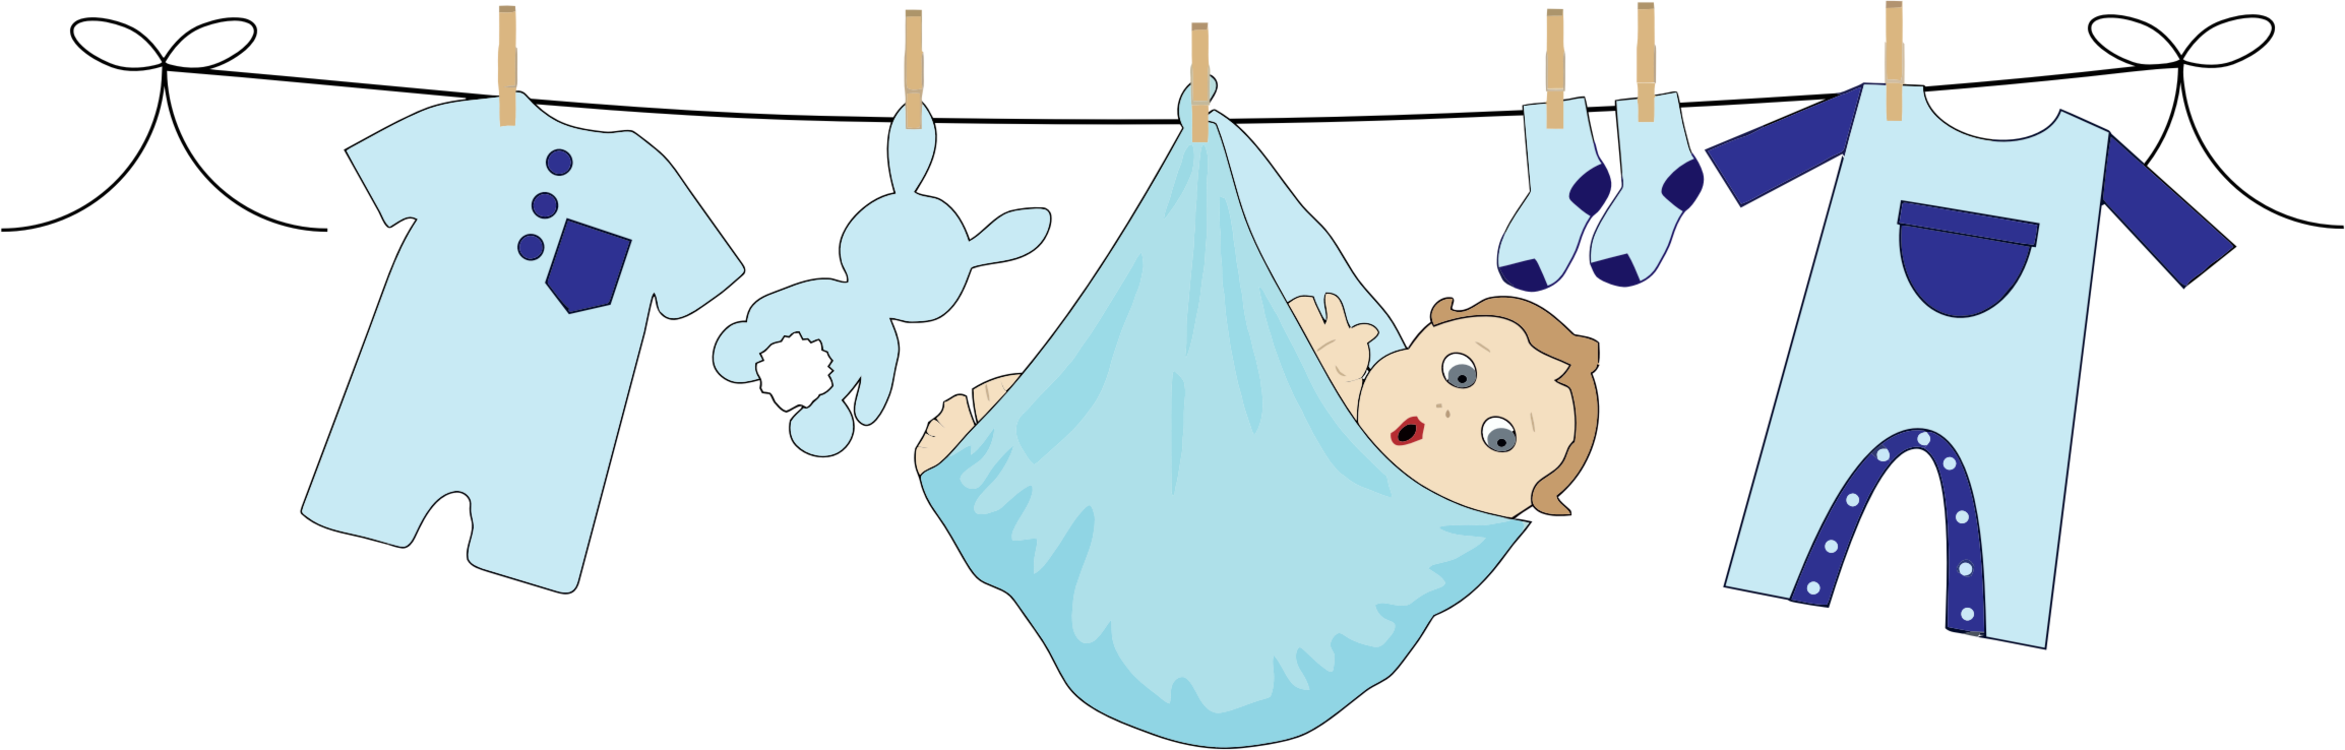 Infant boy child computer. Diaper clipart baby girl clip free